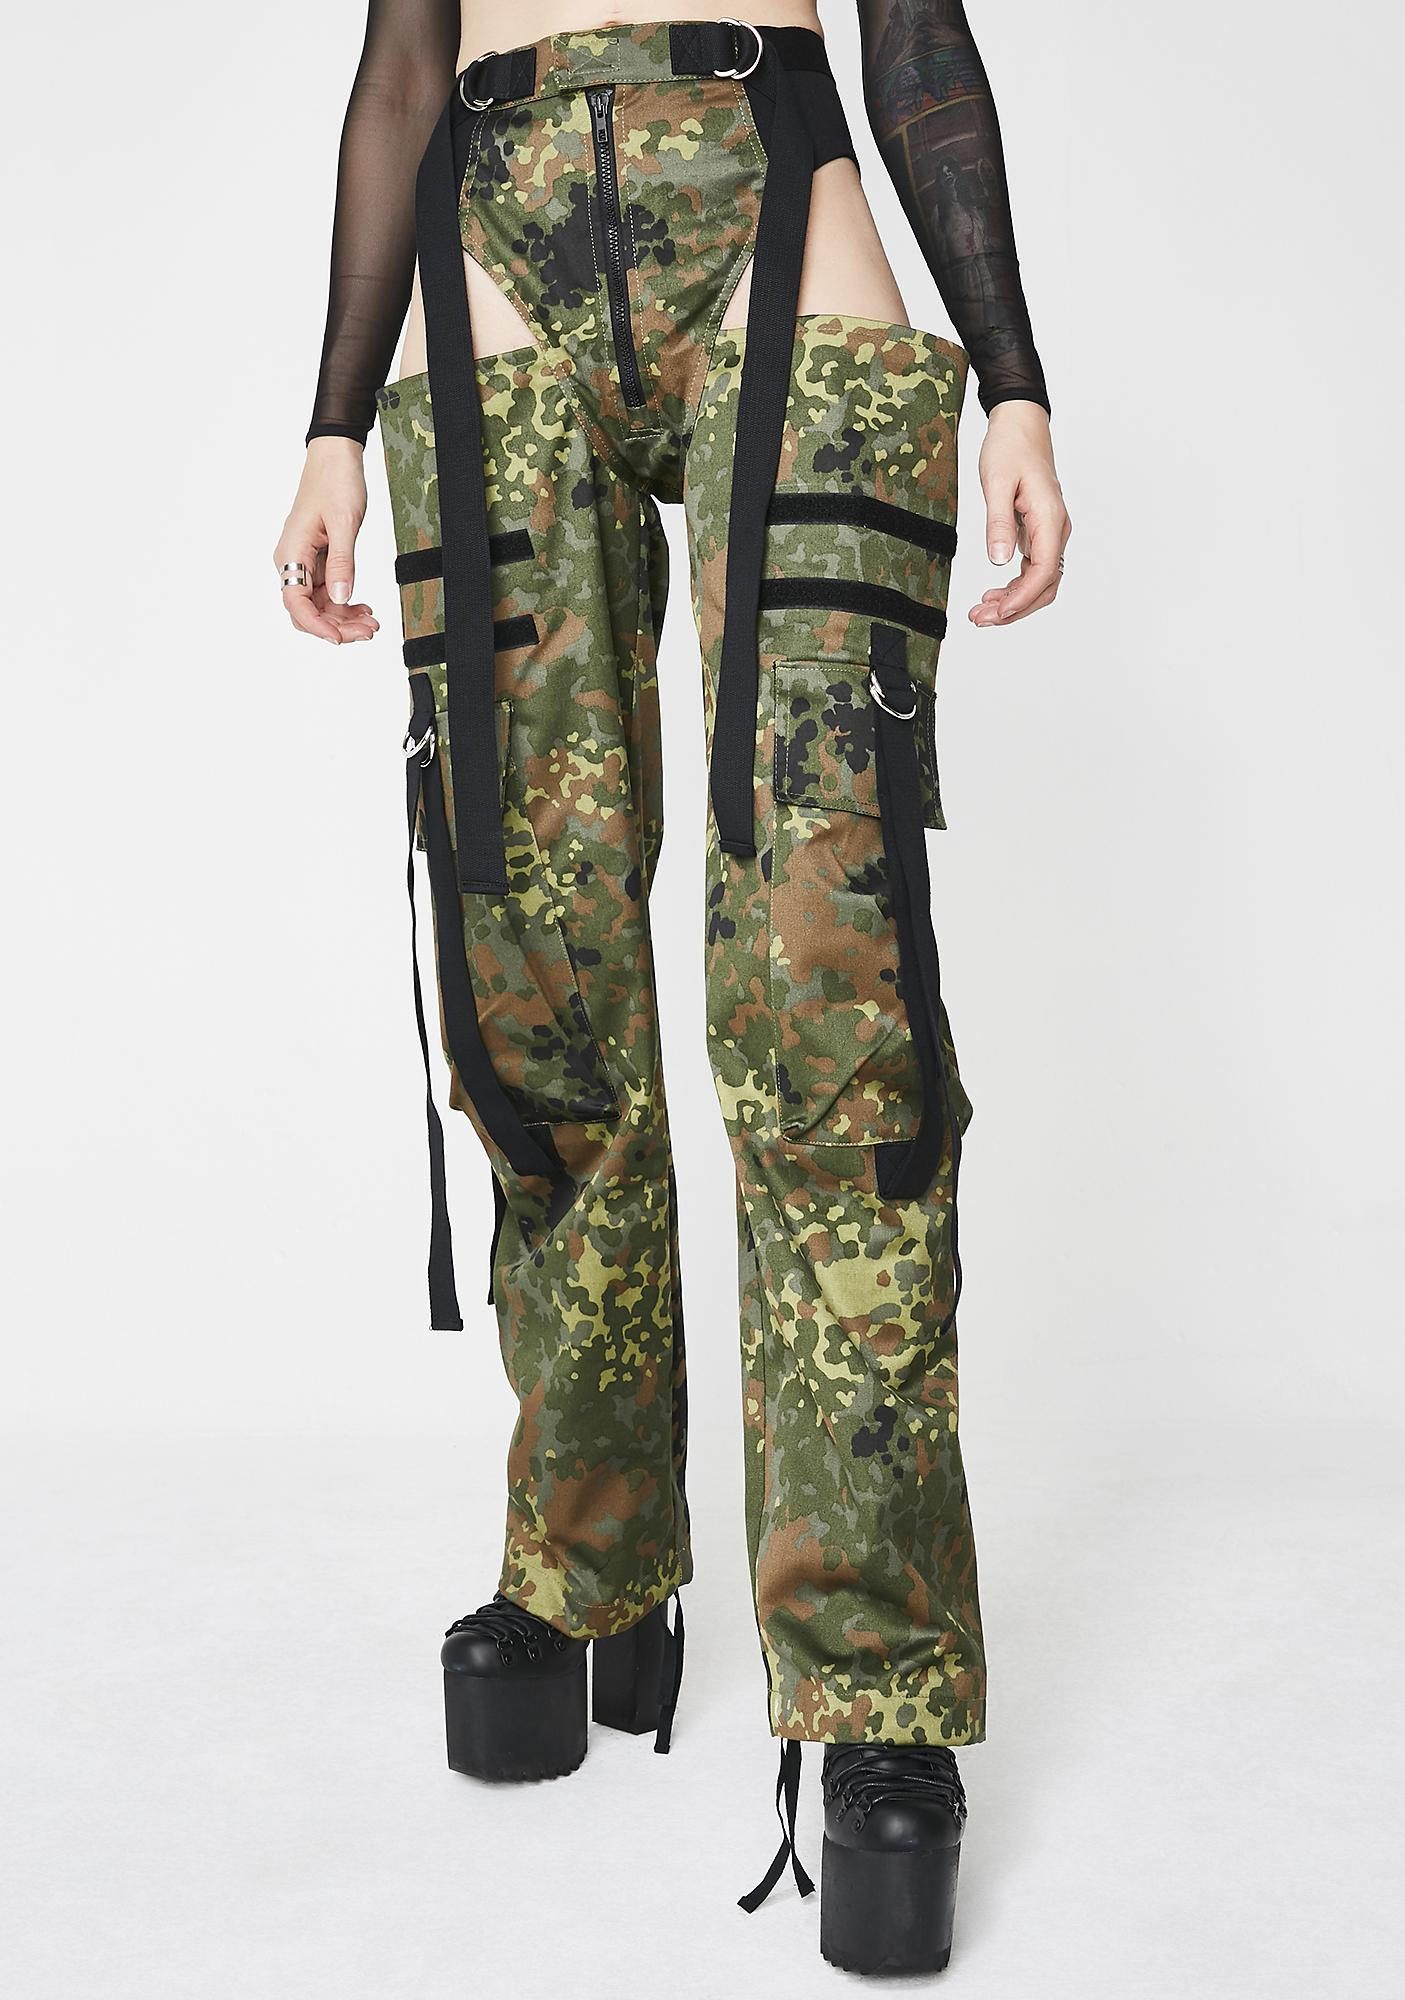 Camo Panty Trousers by Namilia